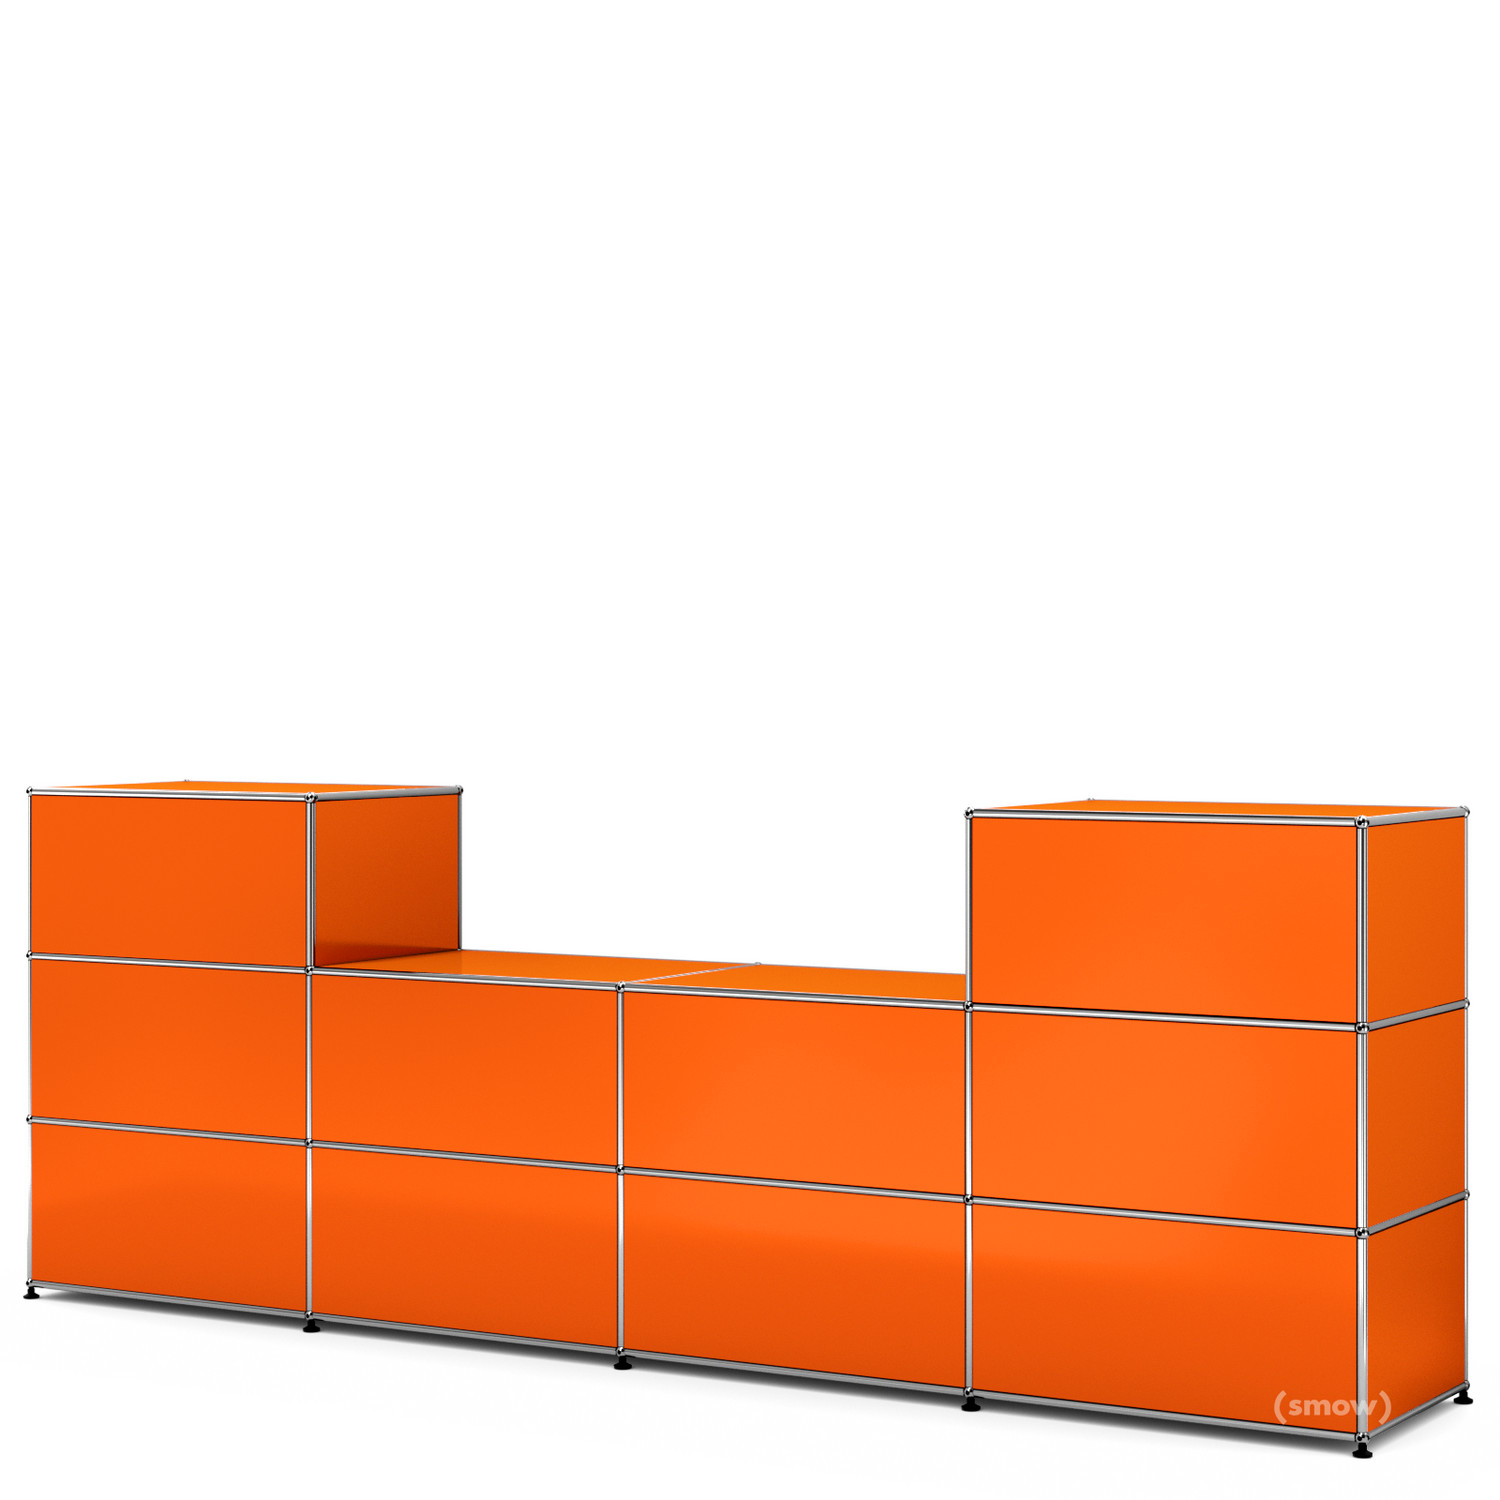 usm haller theke typ 3 reinorange ral 2004 50 cm von. Black Bedroom Furniture Sets. Home Design Ideas